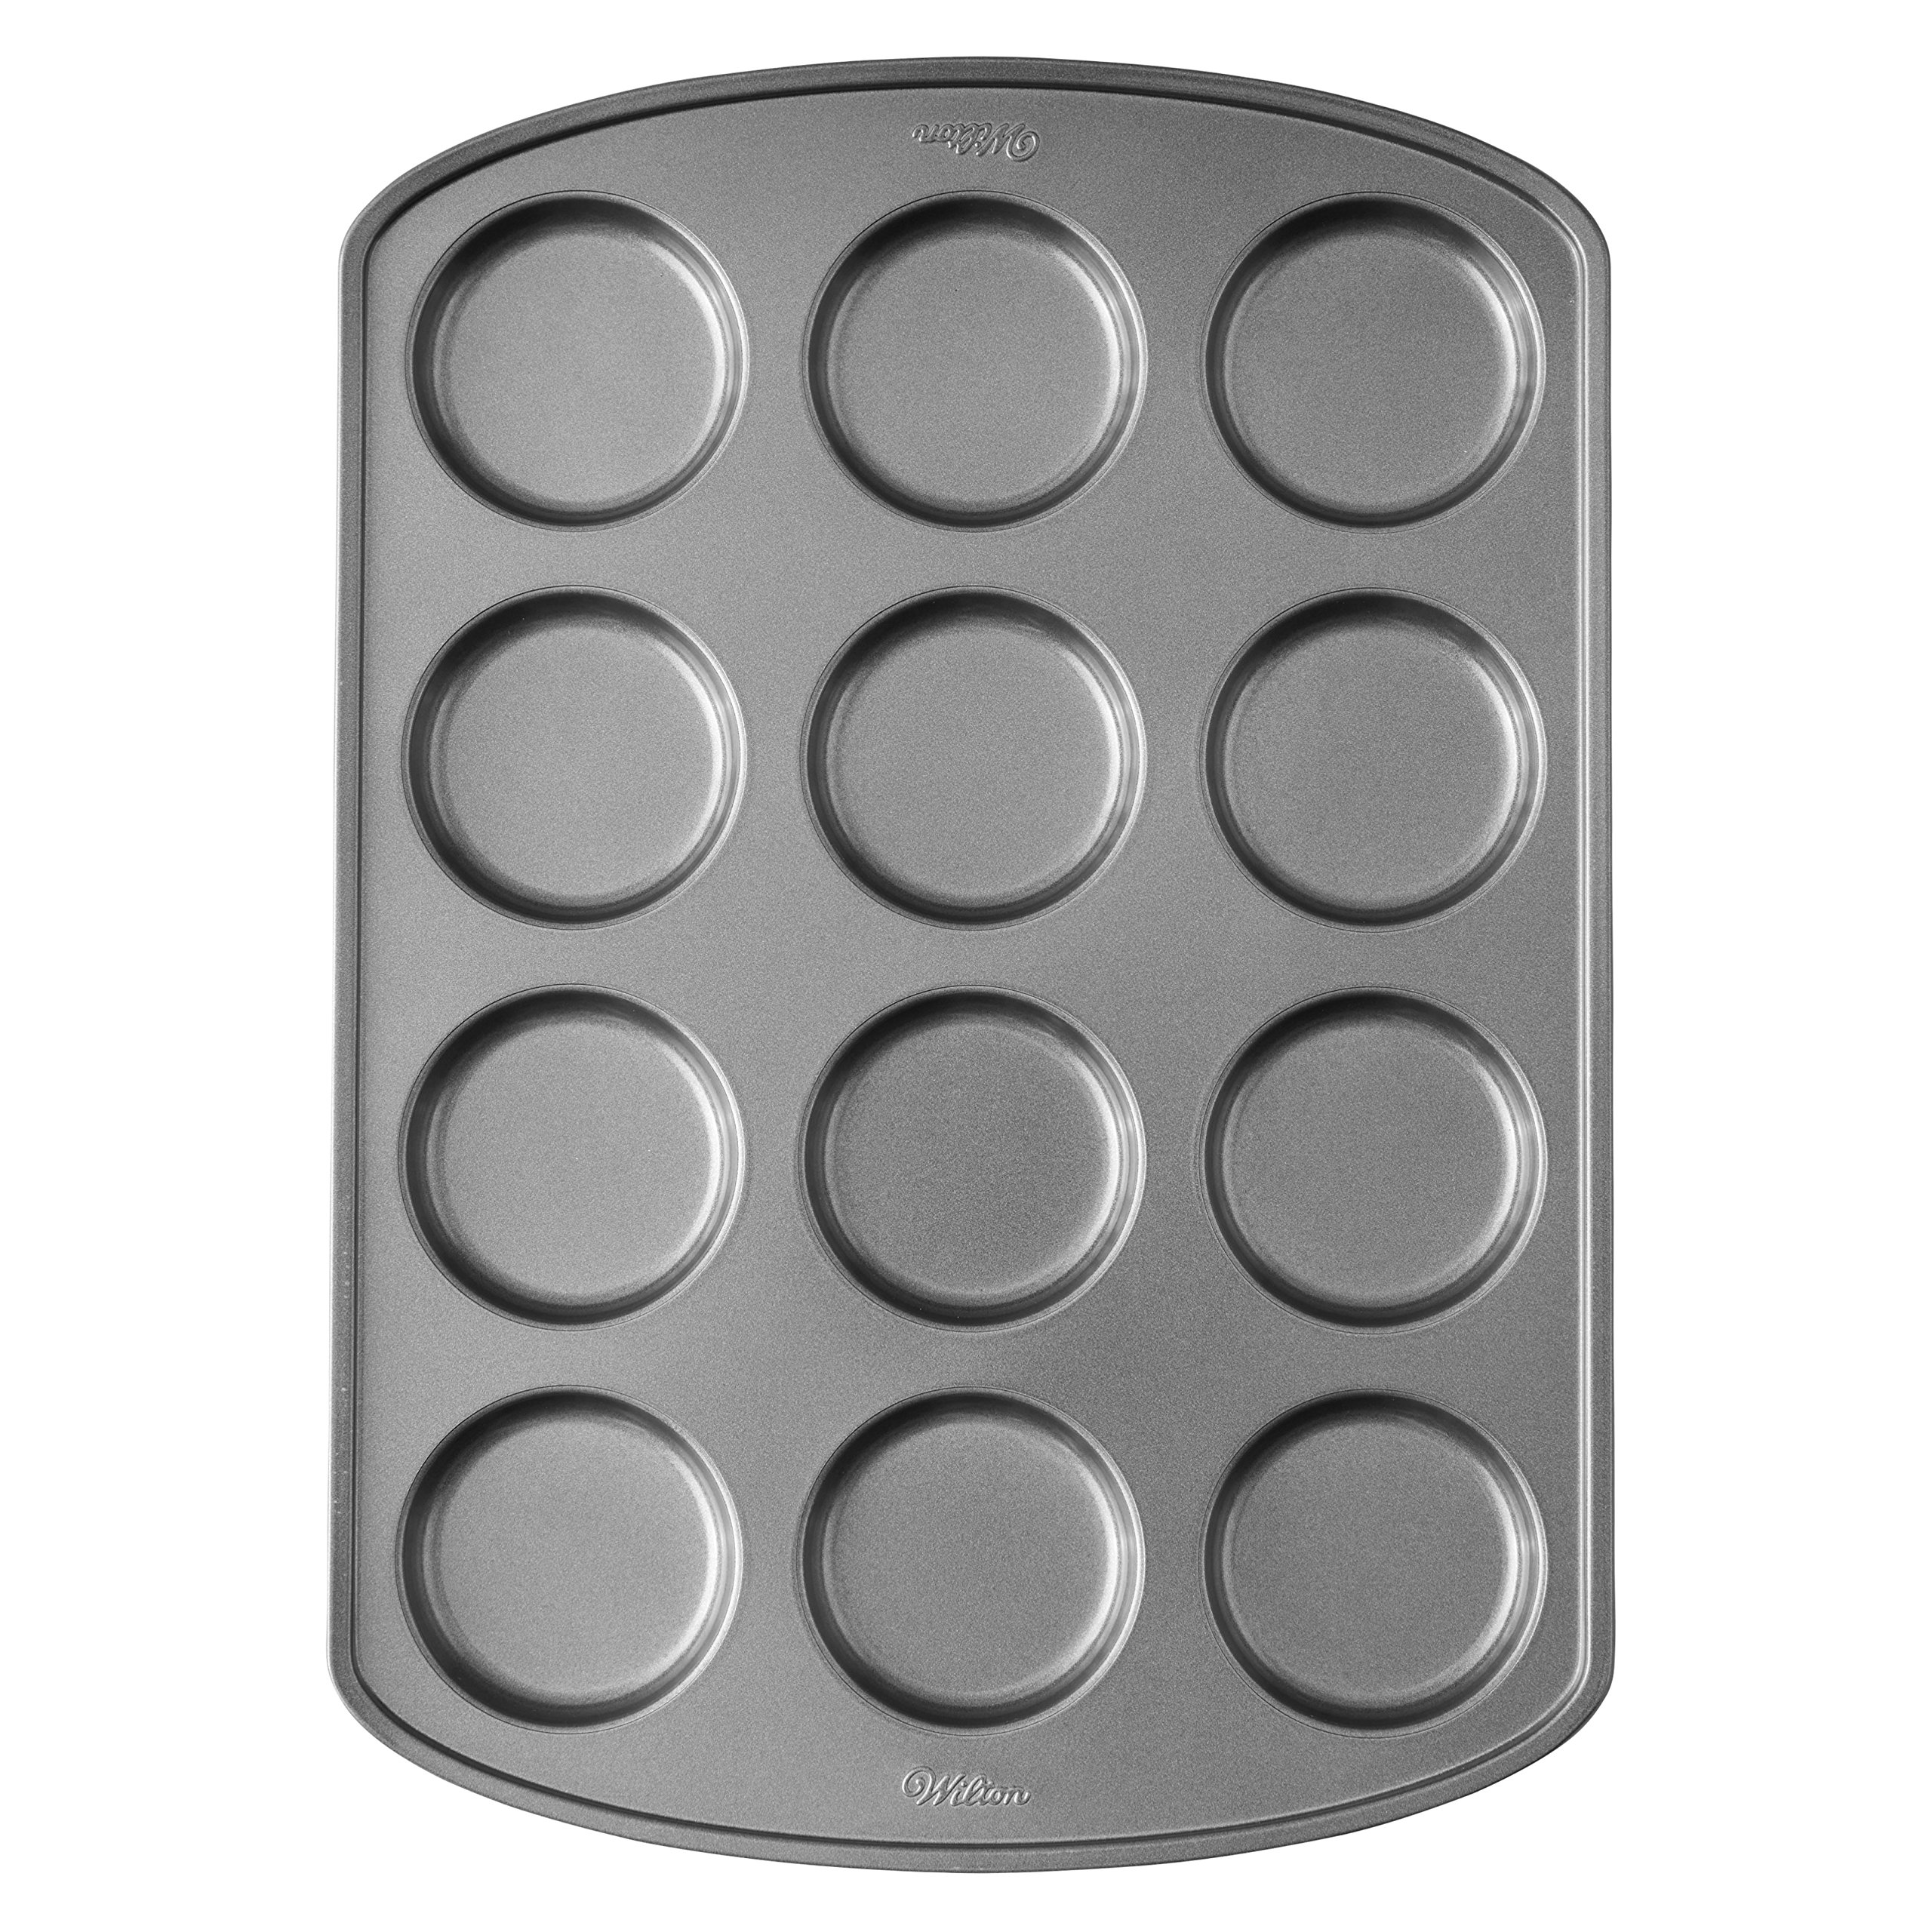 Wilton Perfect Results Premium Non-Stick Muffin Top Baking Pan, 12-Cup by Wilton (Image #1)